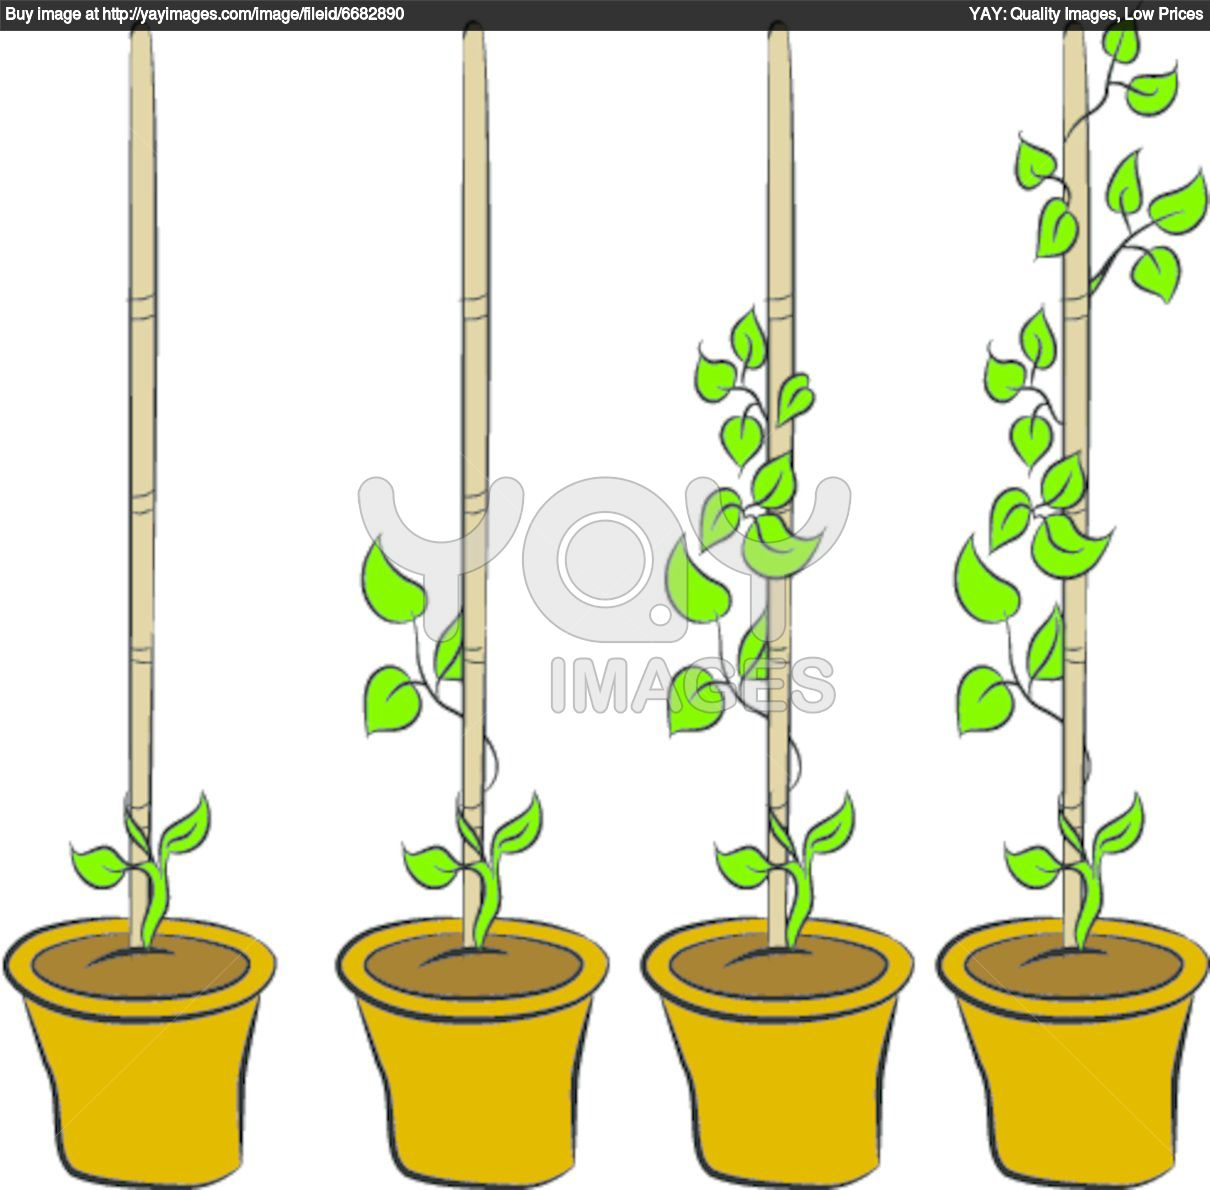 Money plant images clipart image free download Money plant images clipart - ClipartFest image free download